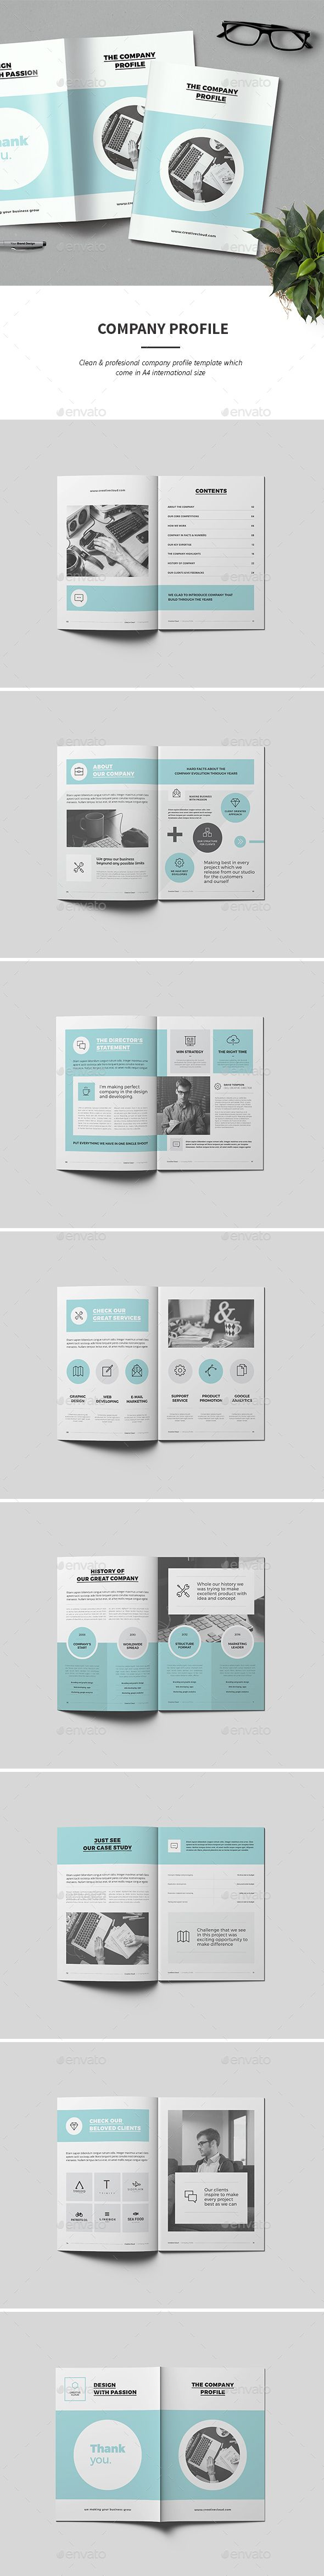 Company Profile — InDesign INDD #corporate #clean • Download ➝ https://graphicriver.net/item/company-profile/18934096?ref=pxcr